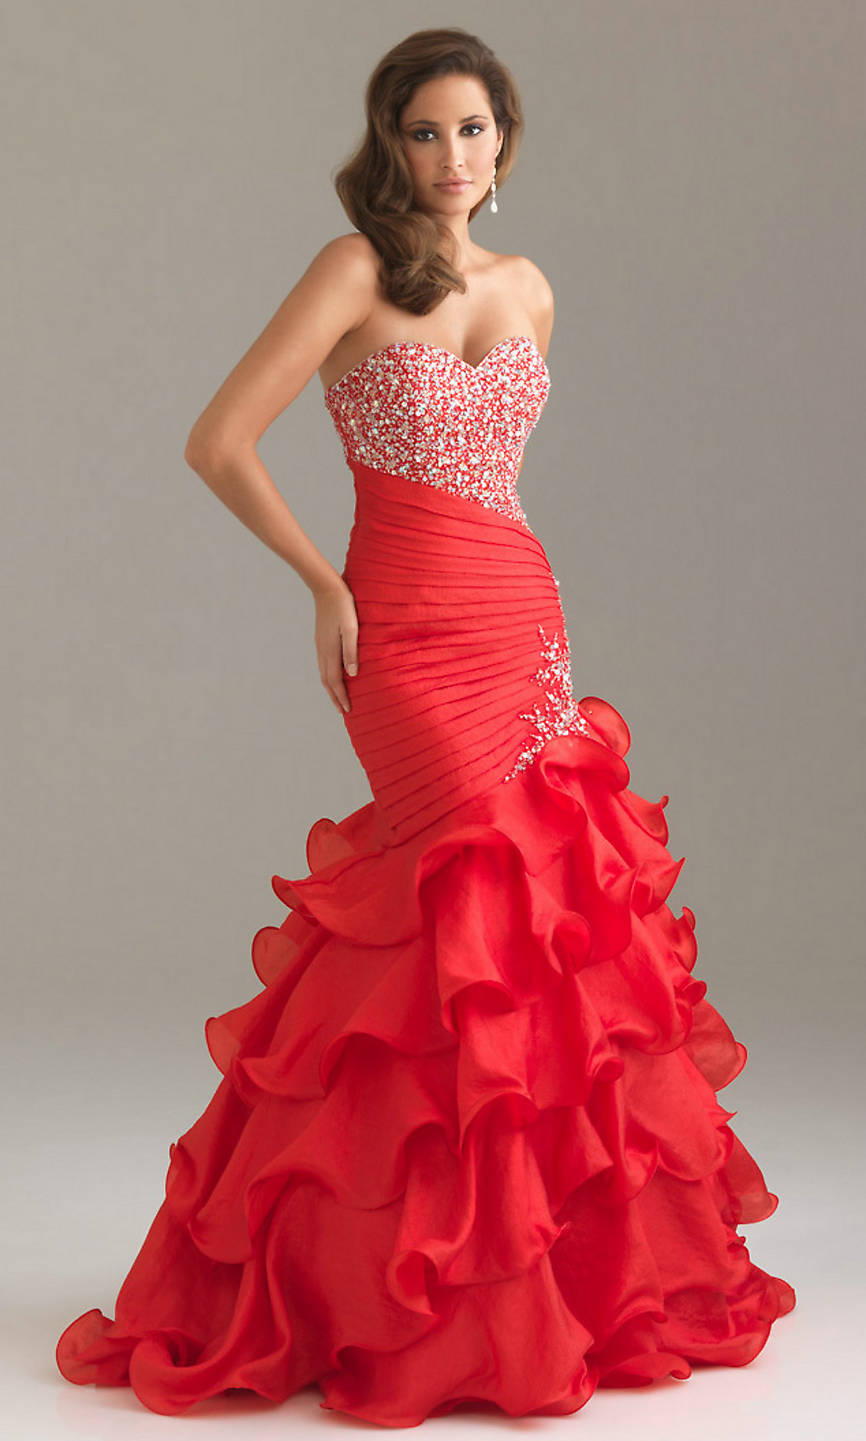 Gorgeous Prom Dresses Style To Match Your Figure Modern